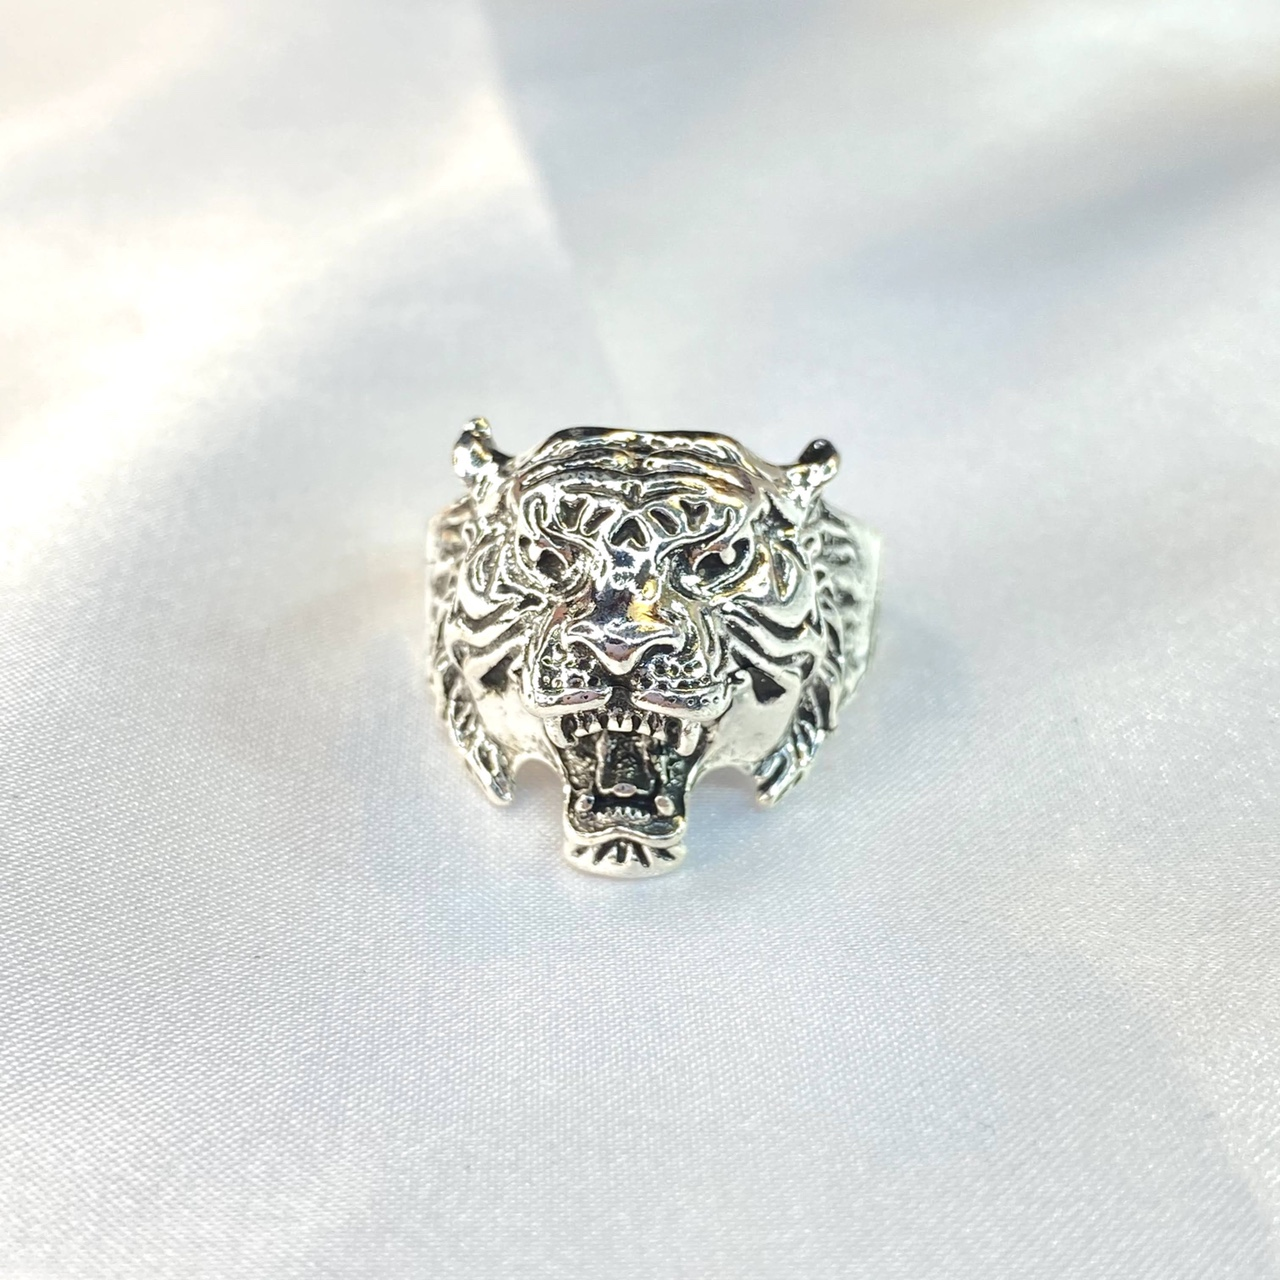 Product Image 1 - Silver Tiger Ring   ꕥ Size